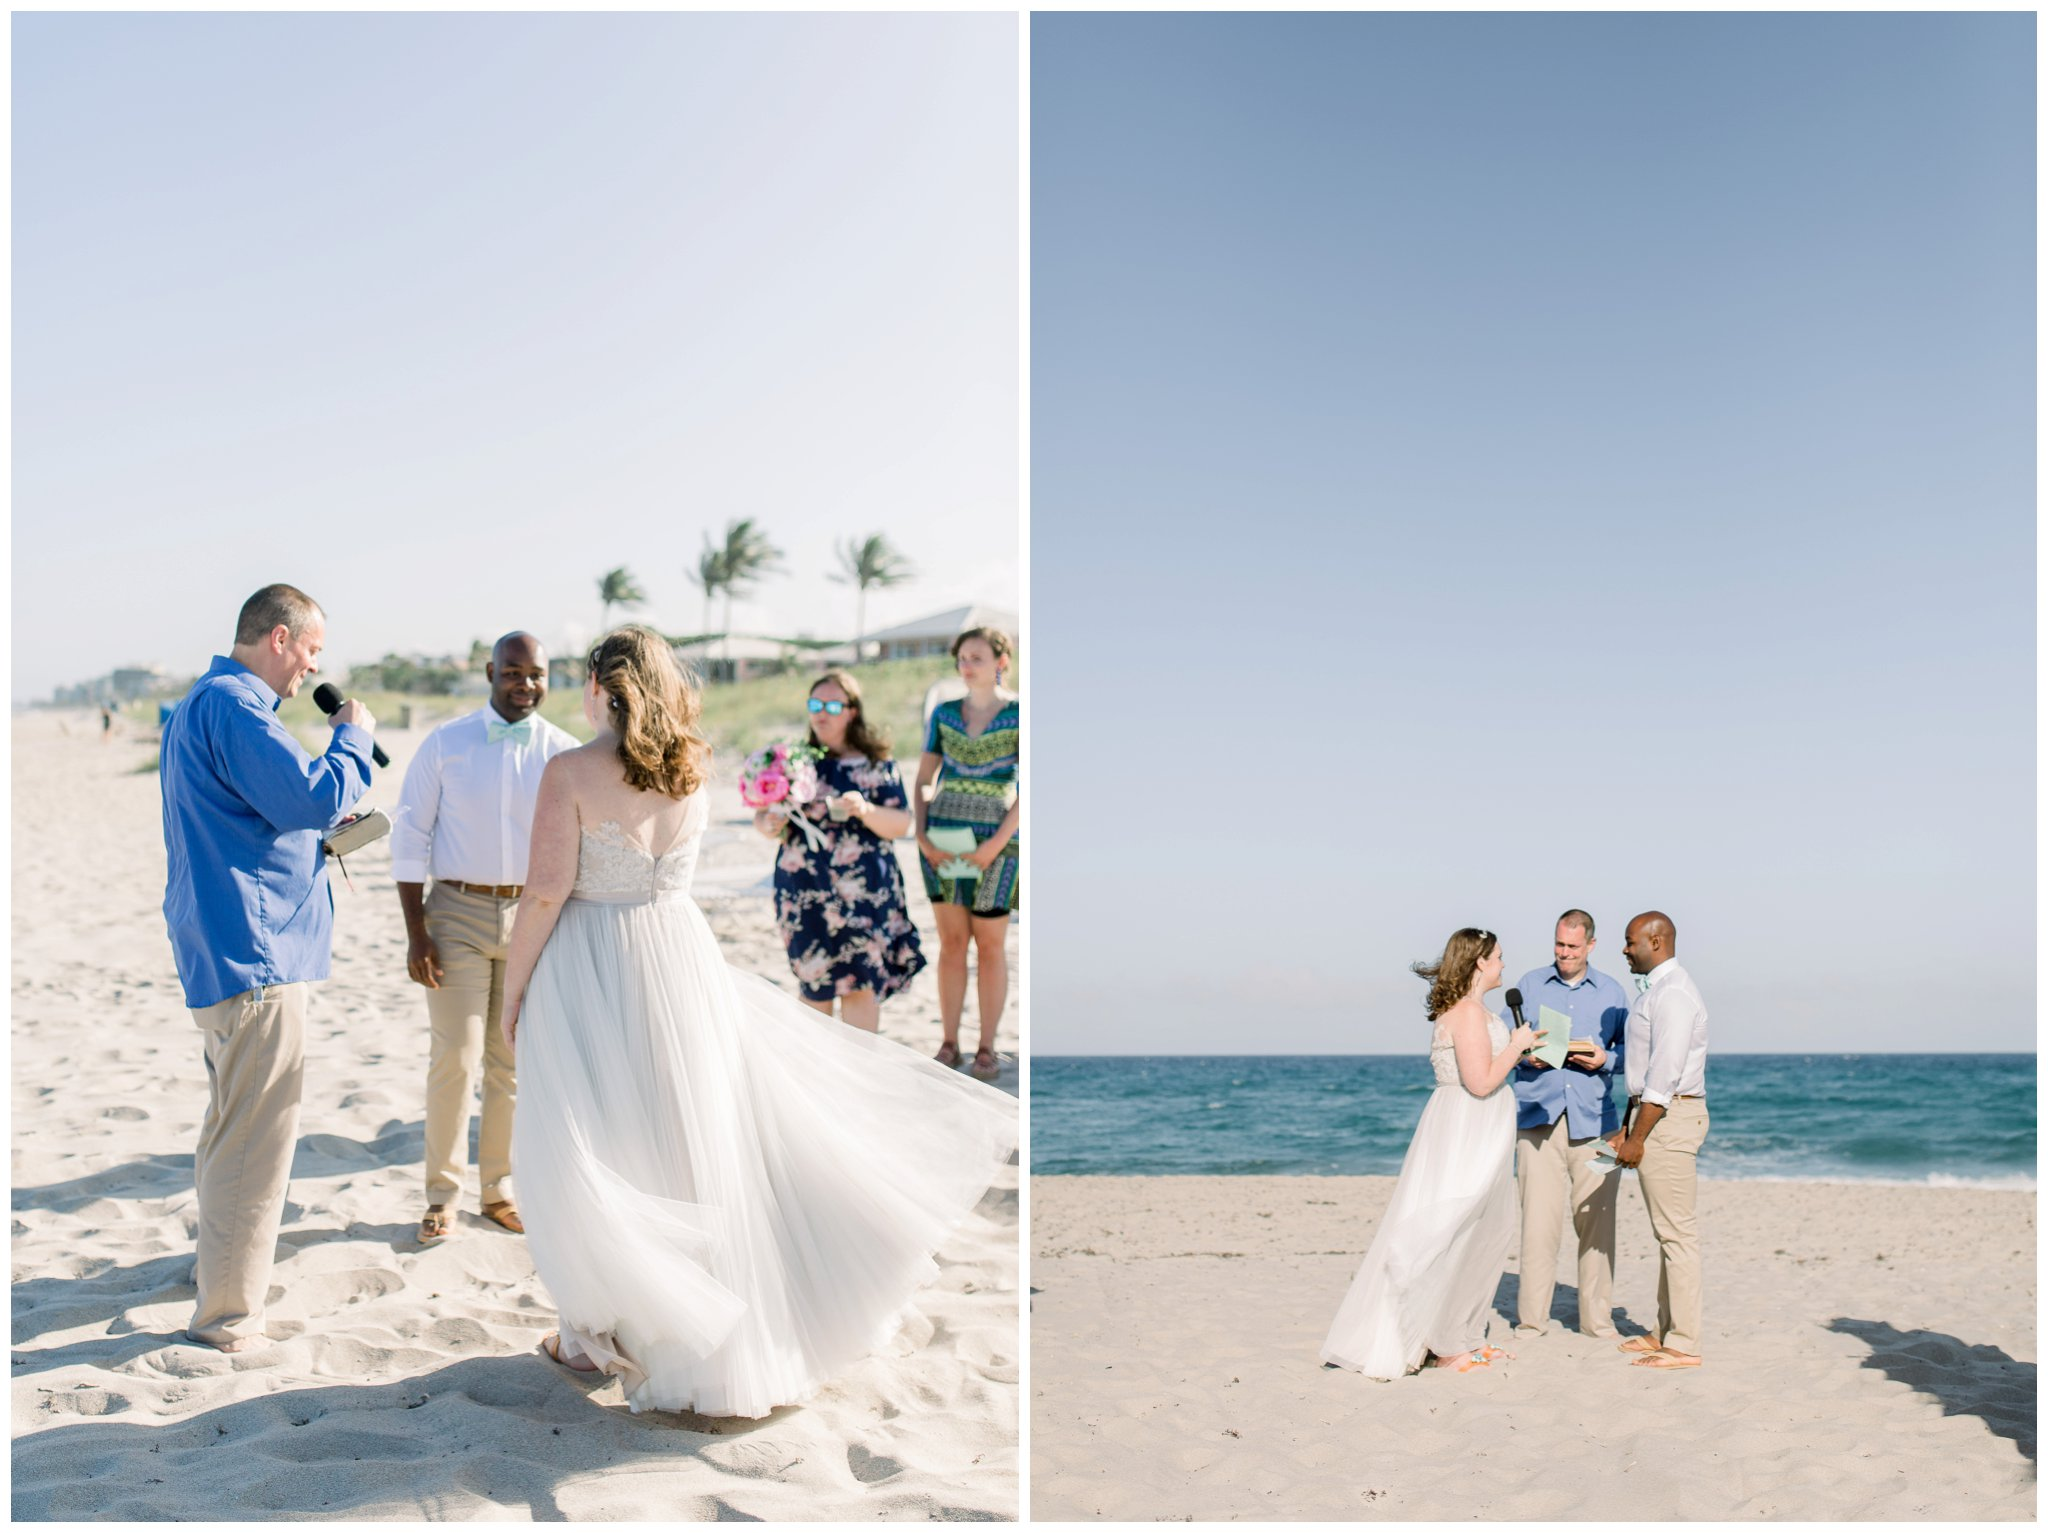 South Florida Wedding Photographer- Palm Beach Wedding Photographer- Jupiter Wedding Photographer- Florida Photographer- Wright by the Sea Wedding- Wright by the Sea- Sturat Florida Wedding_0043.jpg